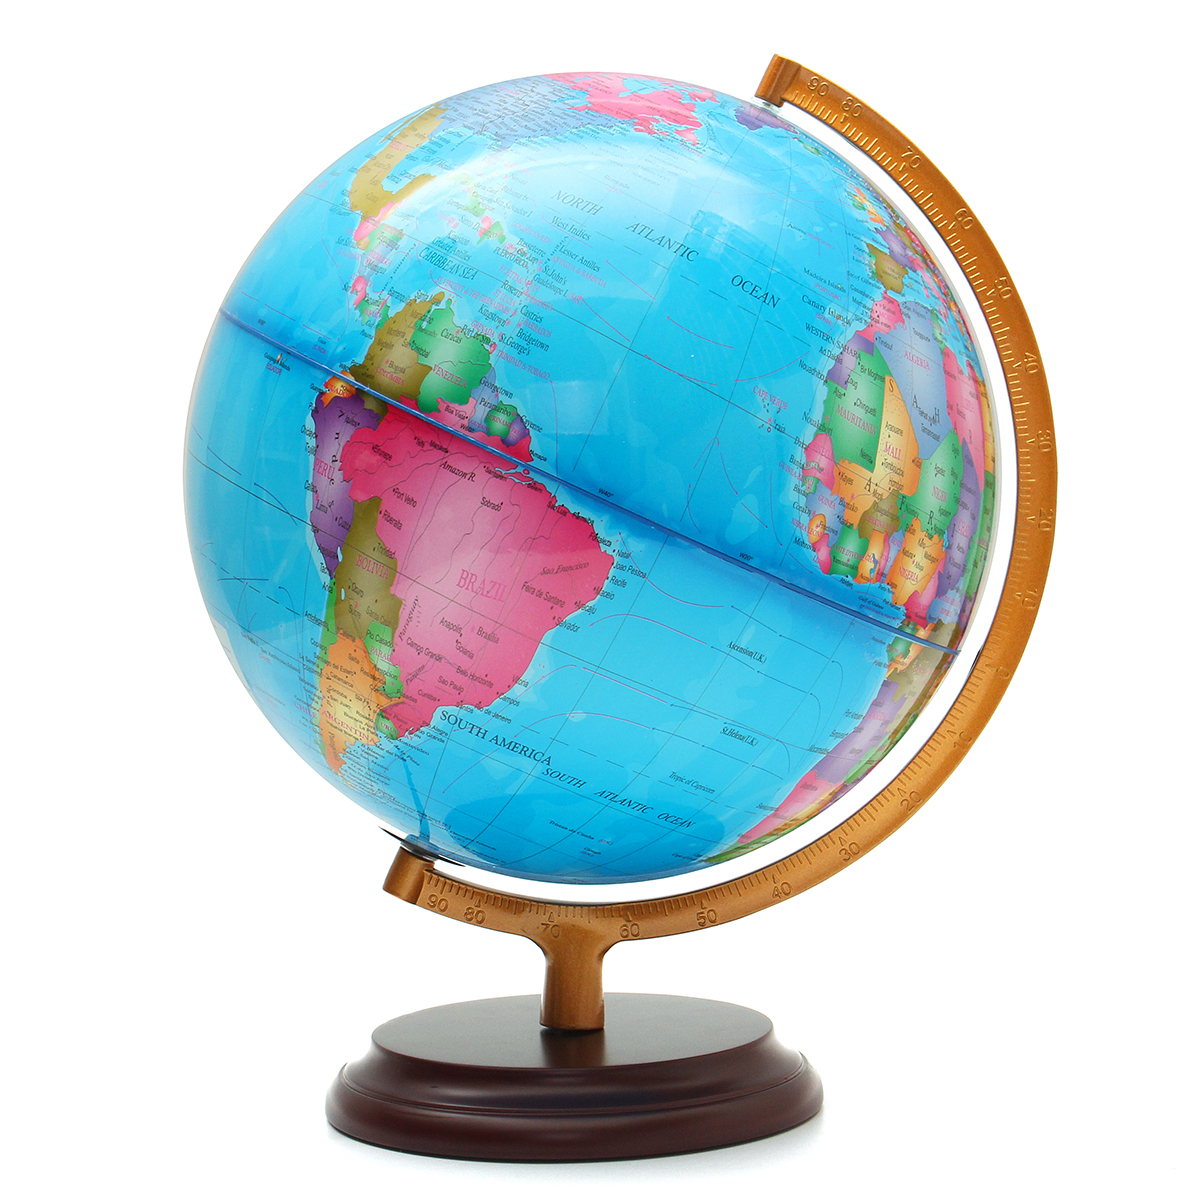 125 world earth globe map geography led illuminated for desktop 718c838d 6aa0 4d4f b7c5 05366d6c5bc7eg gumiabroncs Image collections